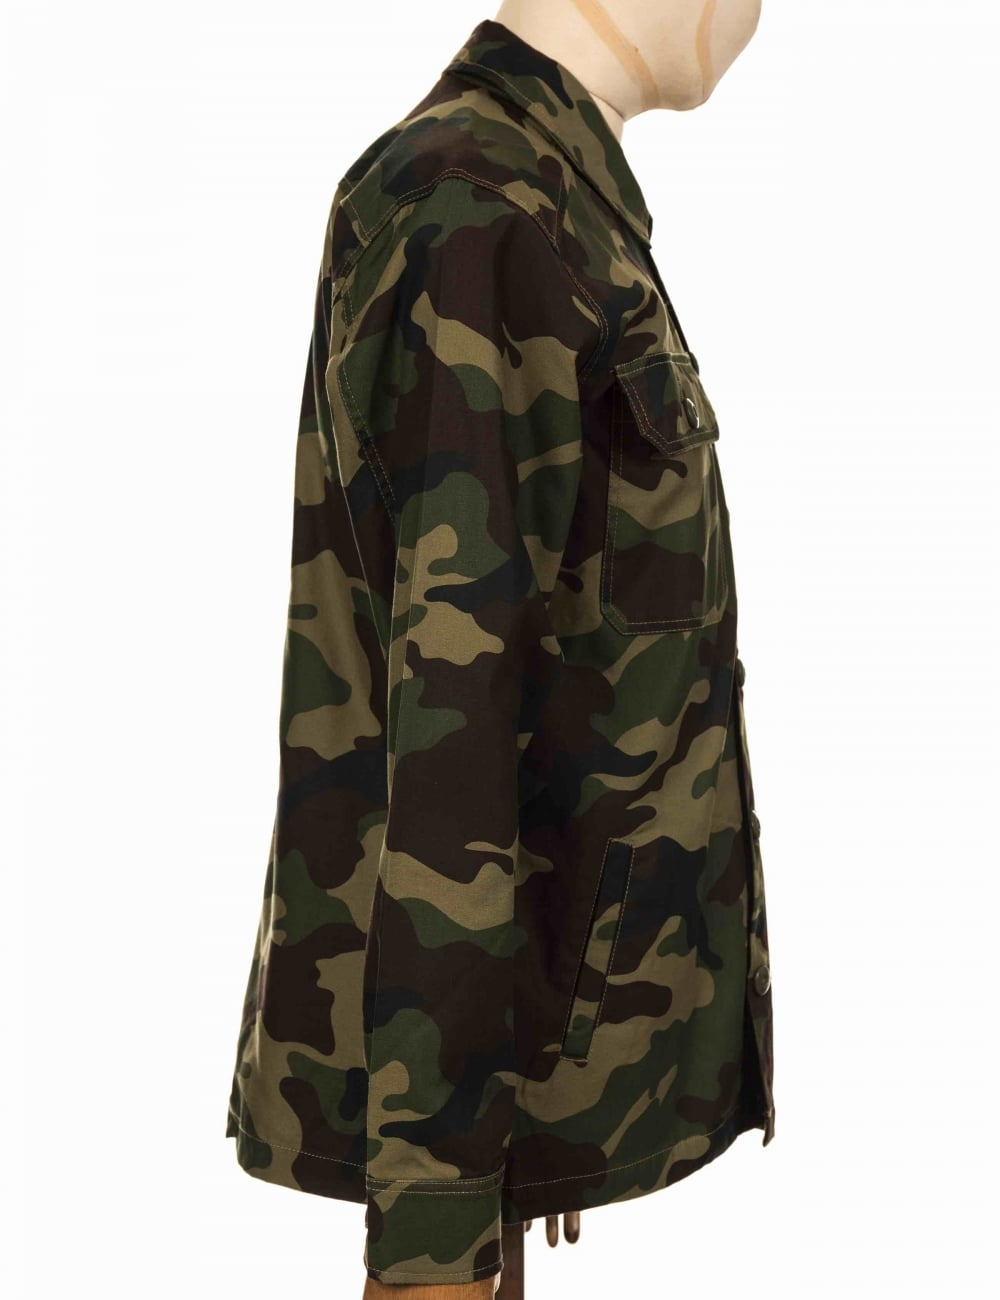 e1655c297973 Obey Clothing Breakdown Jacket - Camo - Clothing from Fat Buddha ...